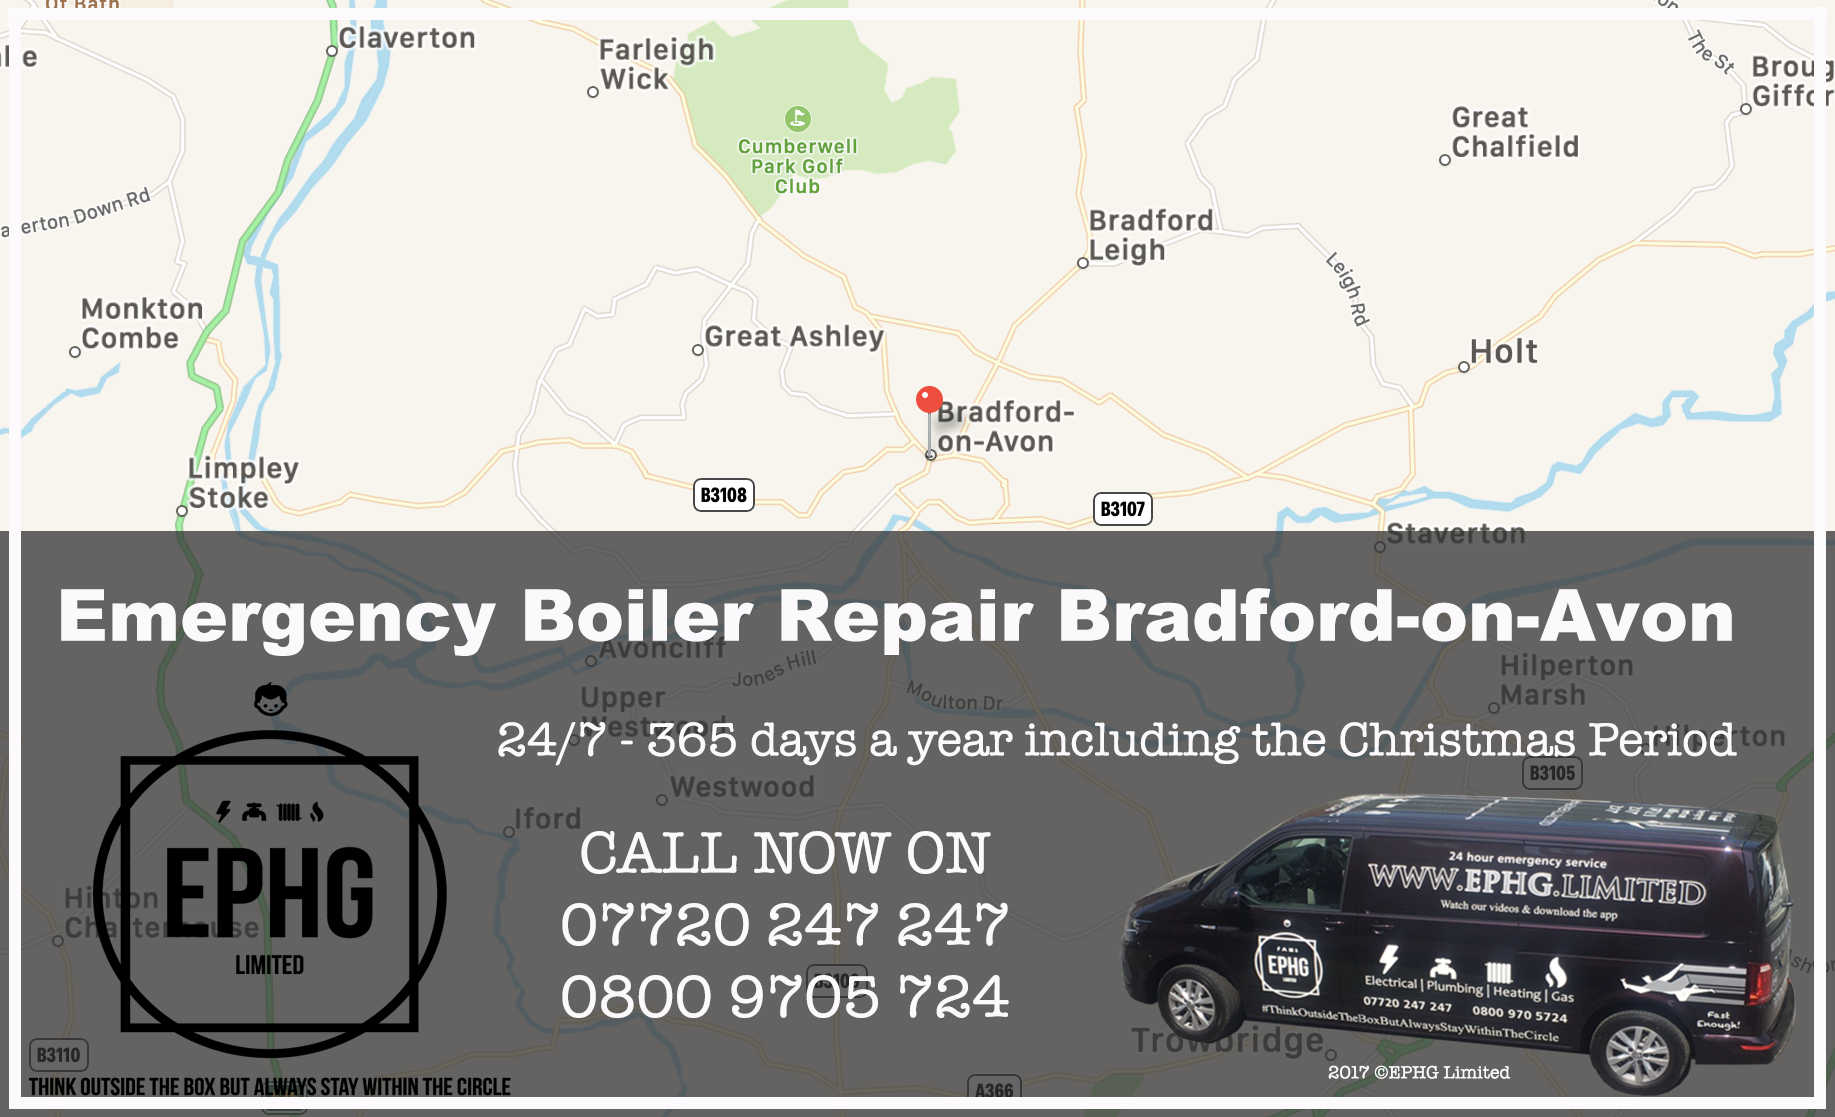 24 Hour Emergency Boiler Repair Bradford-on-Avon